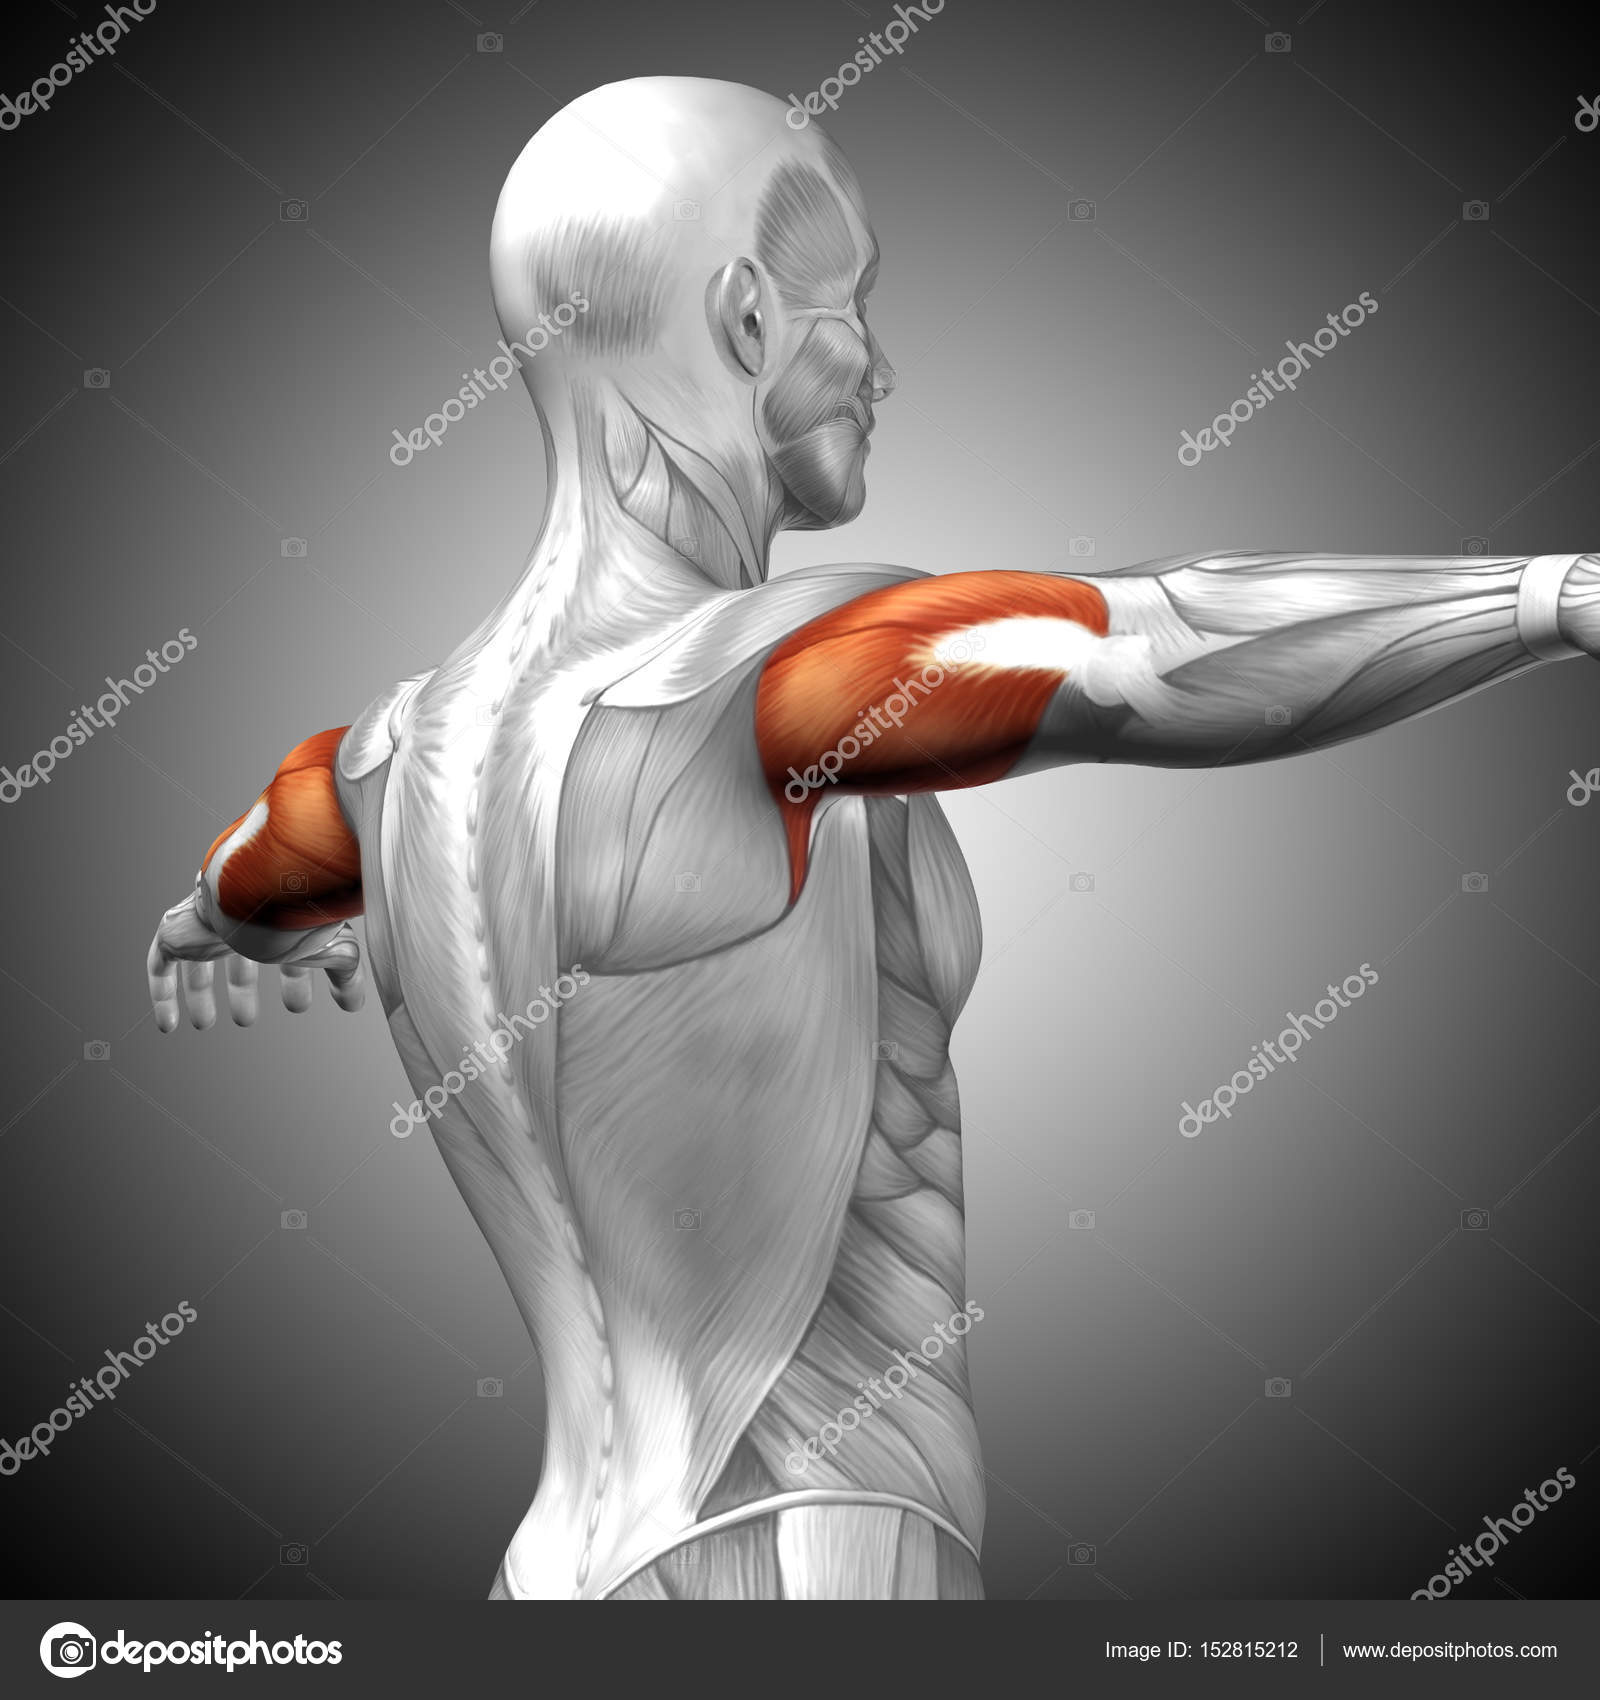 Human Triceps Muscles Anatomy Stock Photo Design36 152815212